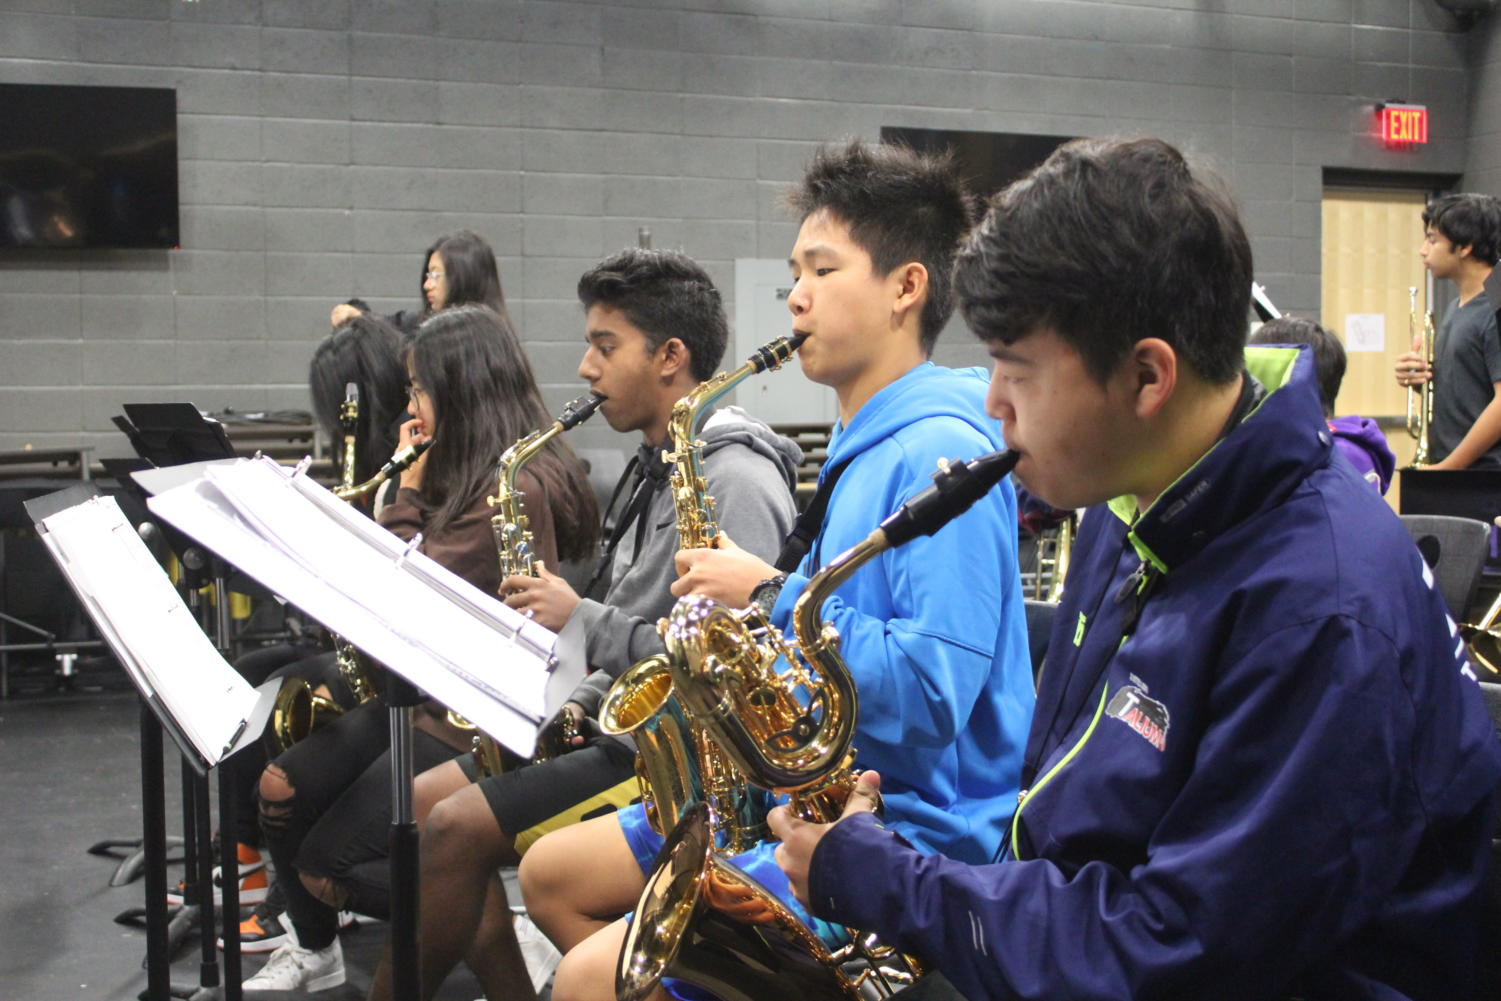 Within the front row of saxophones, alto saxophonists and sophomores Matthew Varughese and Kevin Du and baritone saxophonist freshman Garrett Lee play soulful blues during rehearsal in time with the rhythm and brass sections.